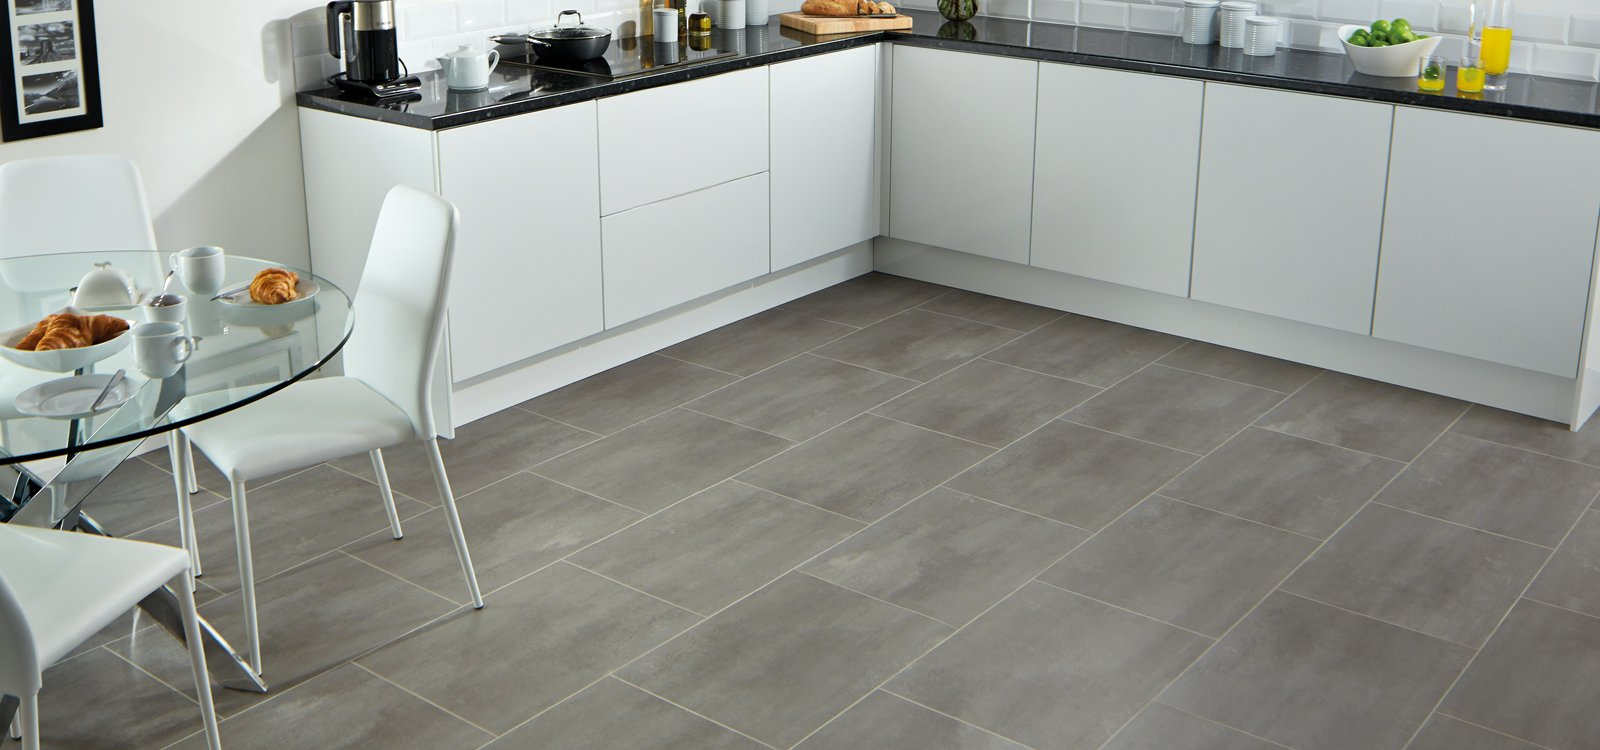 LVT Luxury Vinyl Tiles Phoenix Flooring Limited Bristol